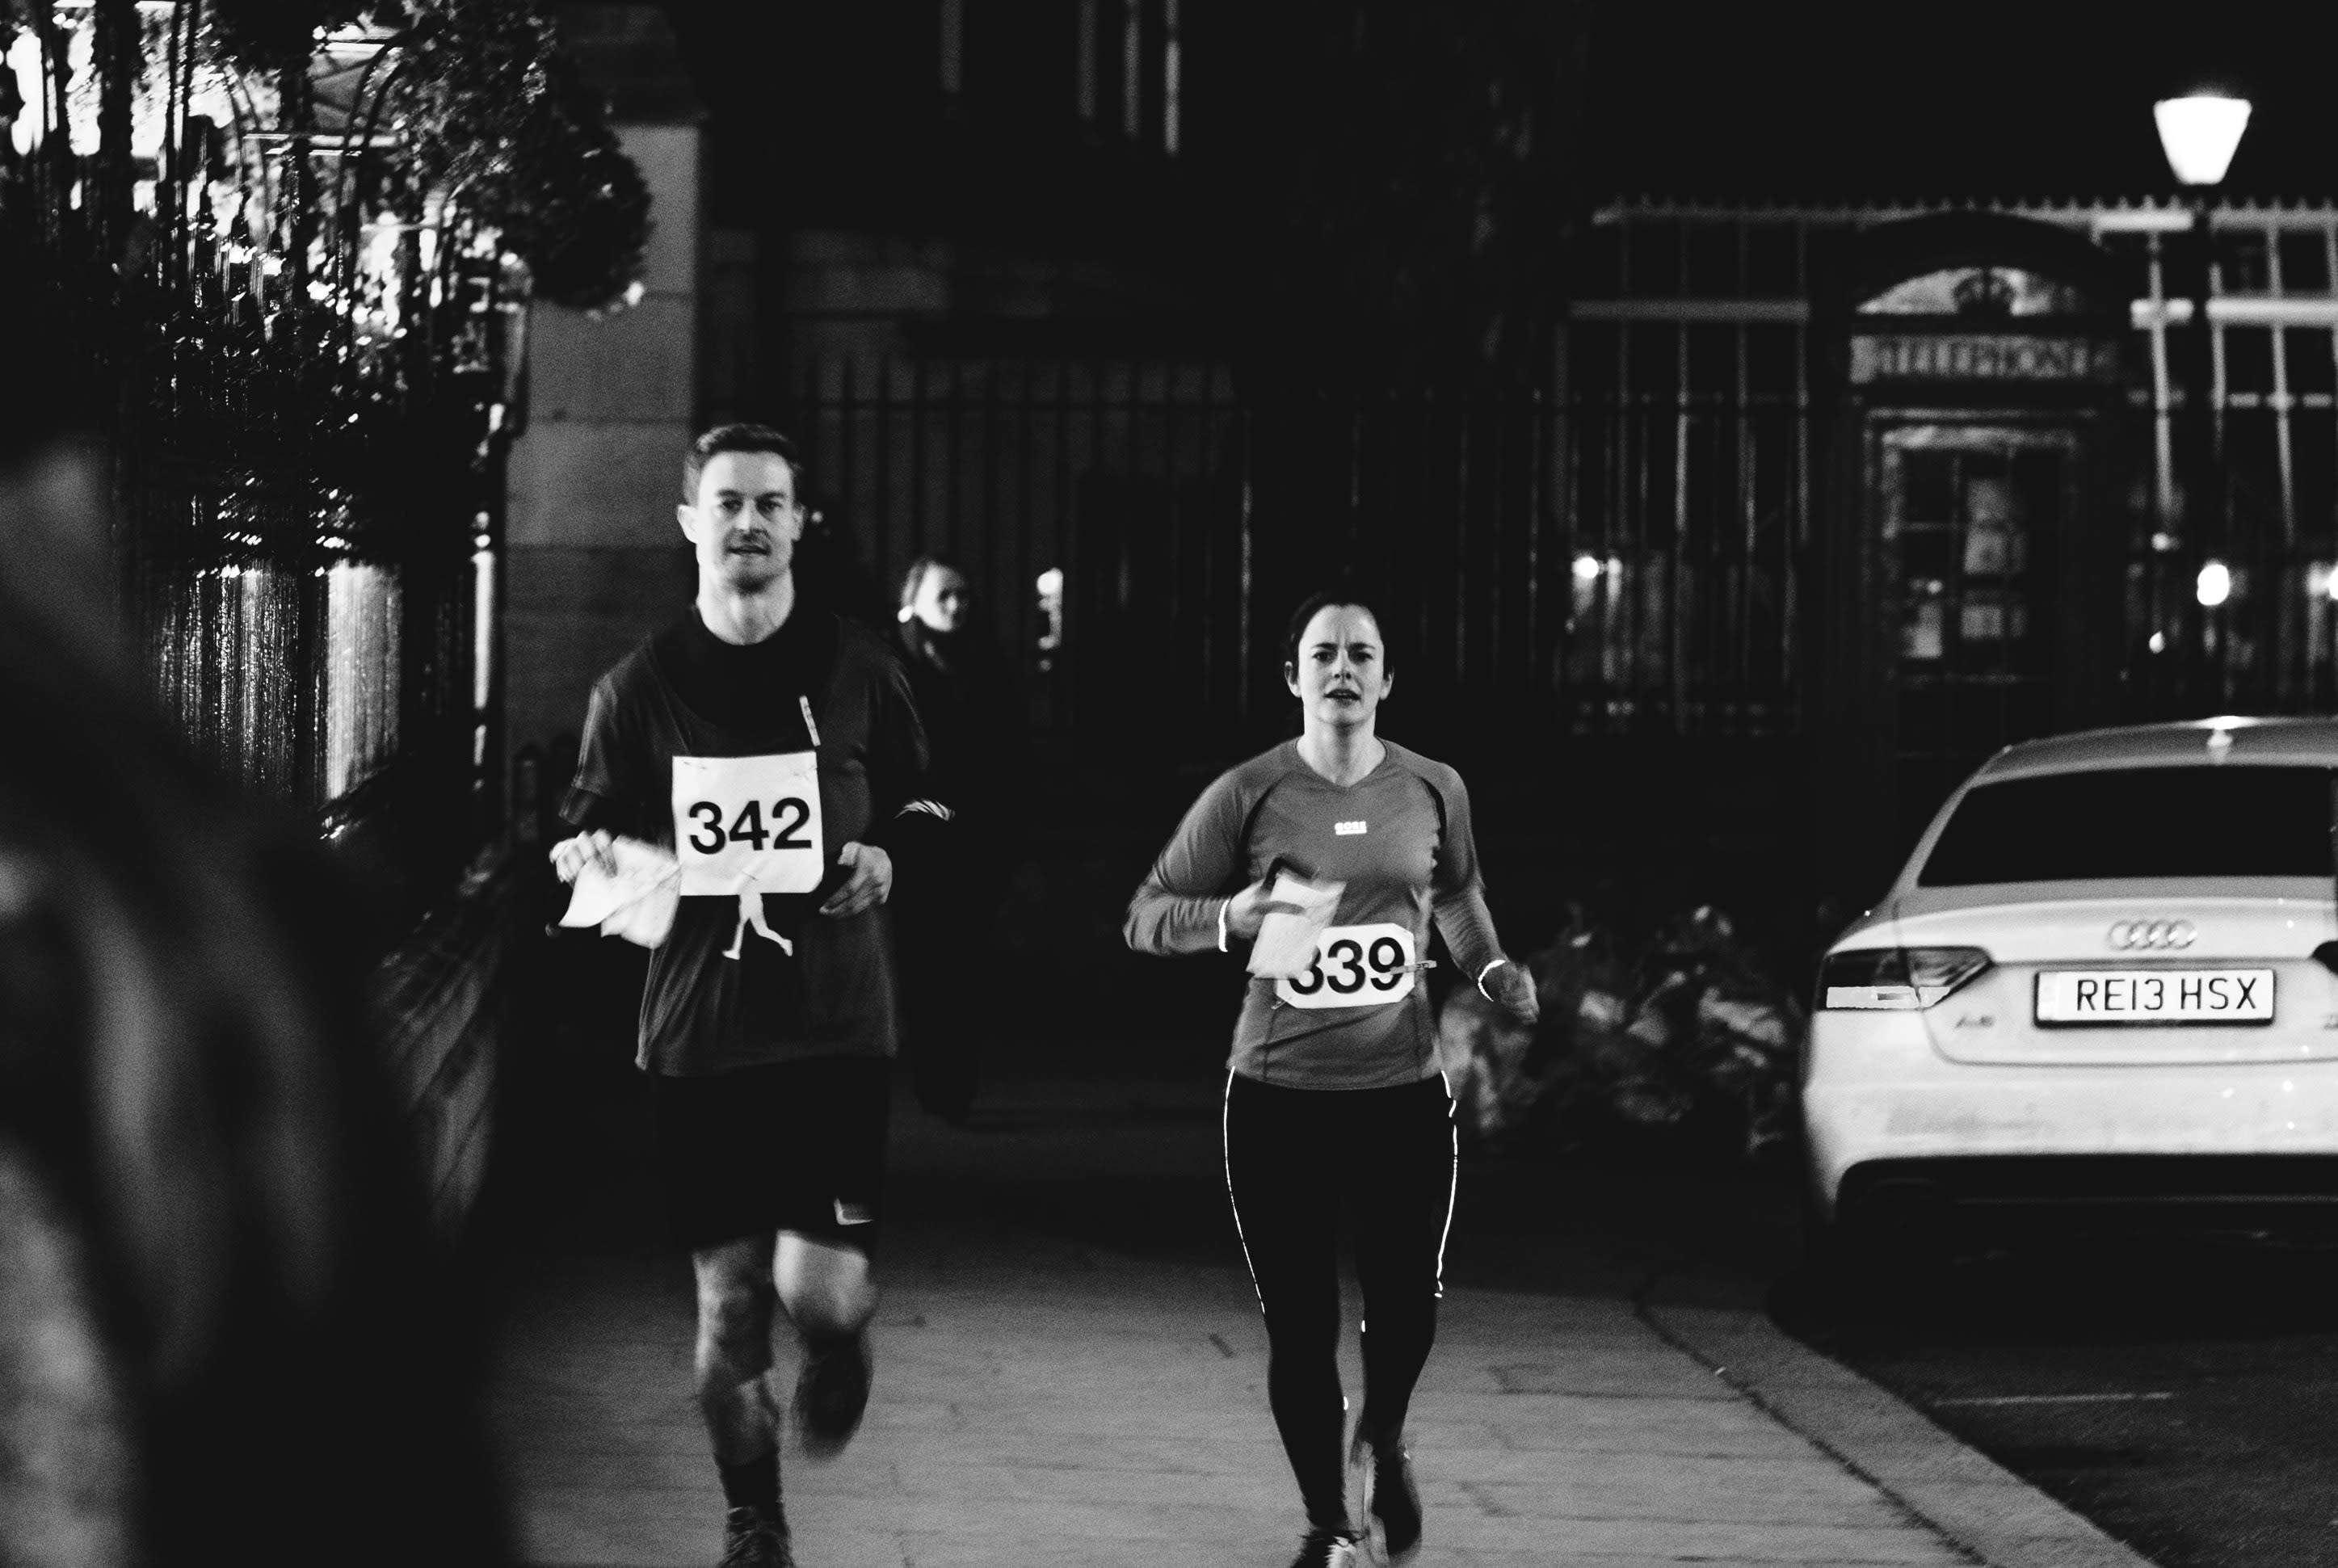 Jack the Ripper Running Tour (Speedy Sub-11 min/mile pace)